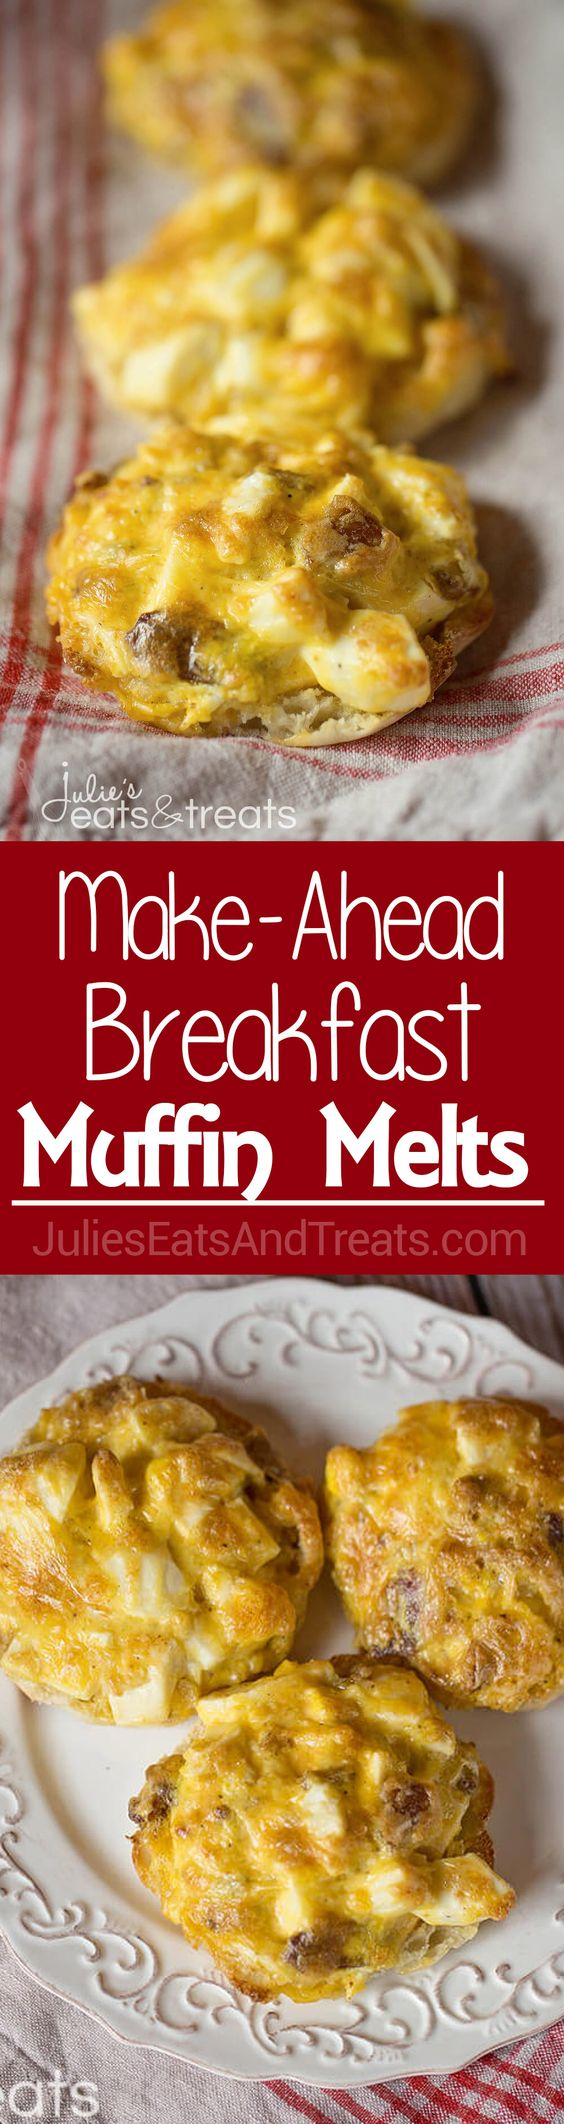 Make-Ahead Breakfast Muffin Melts ~ Melted Cheese, Warm Eggs and Bacon ...